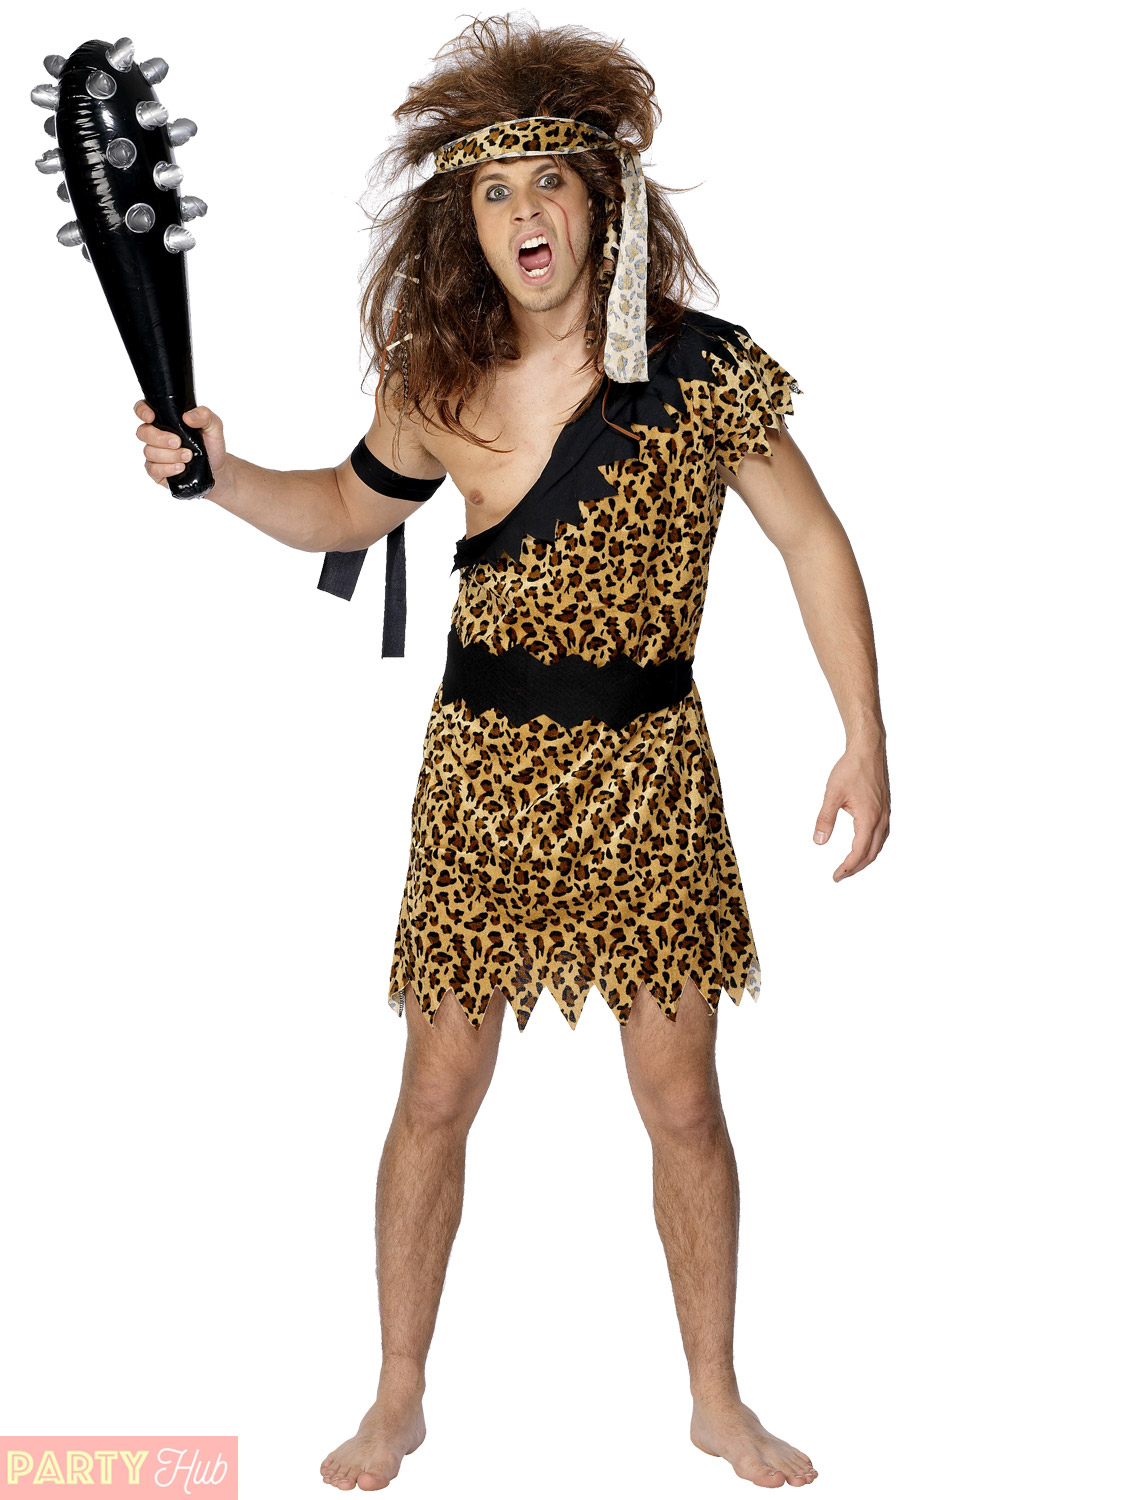 Man Cave Clothing Store : Adults caveman costume mens ladies cave girl fancy dress